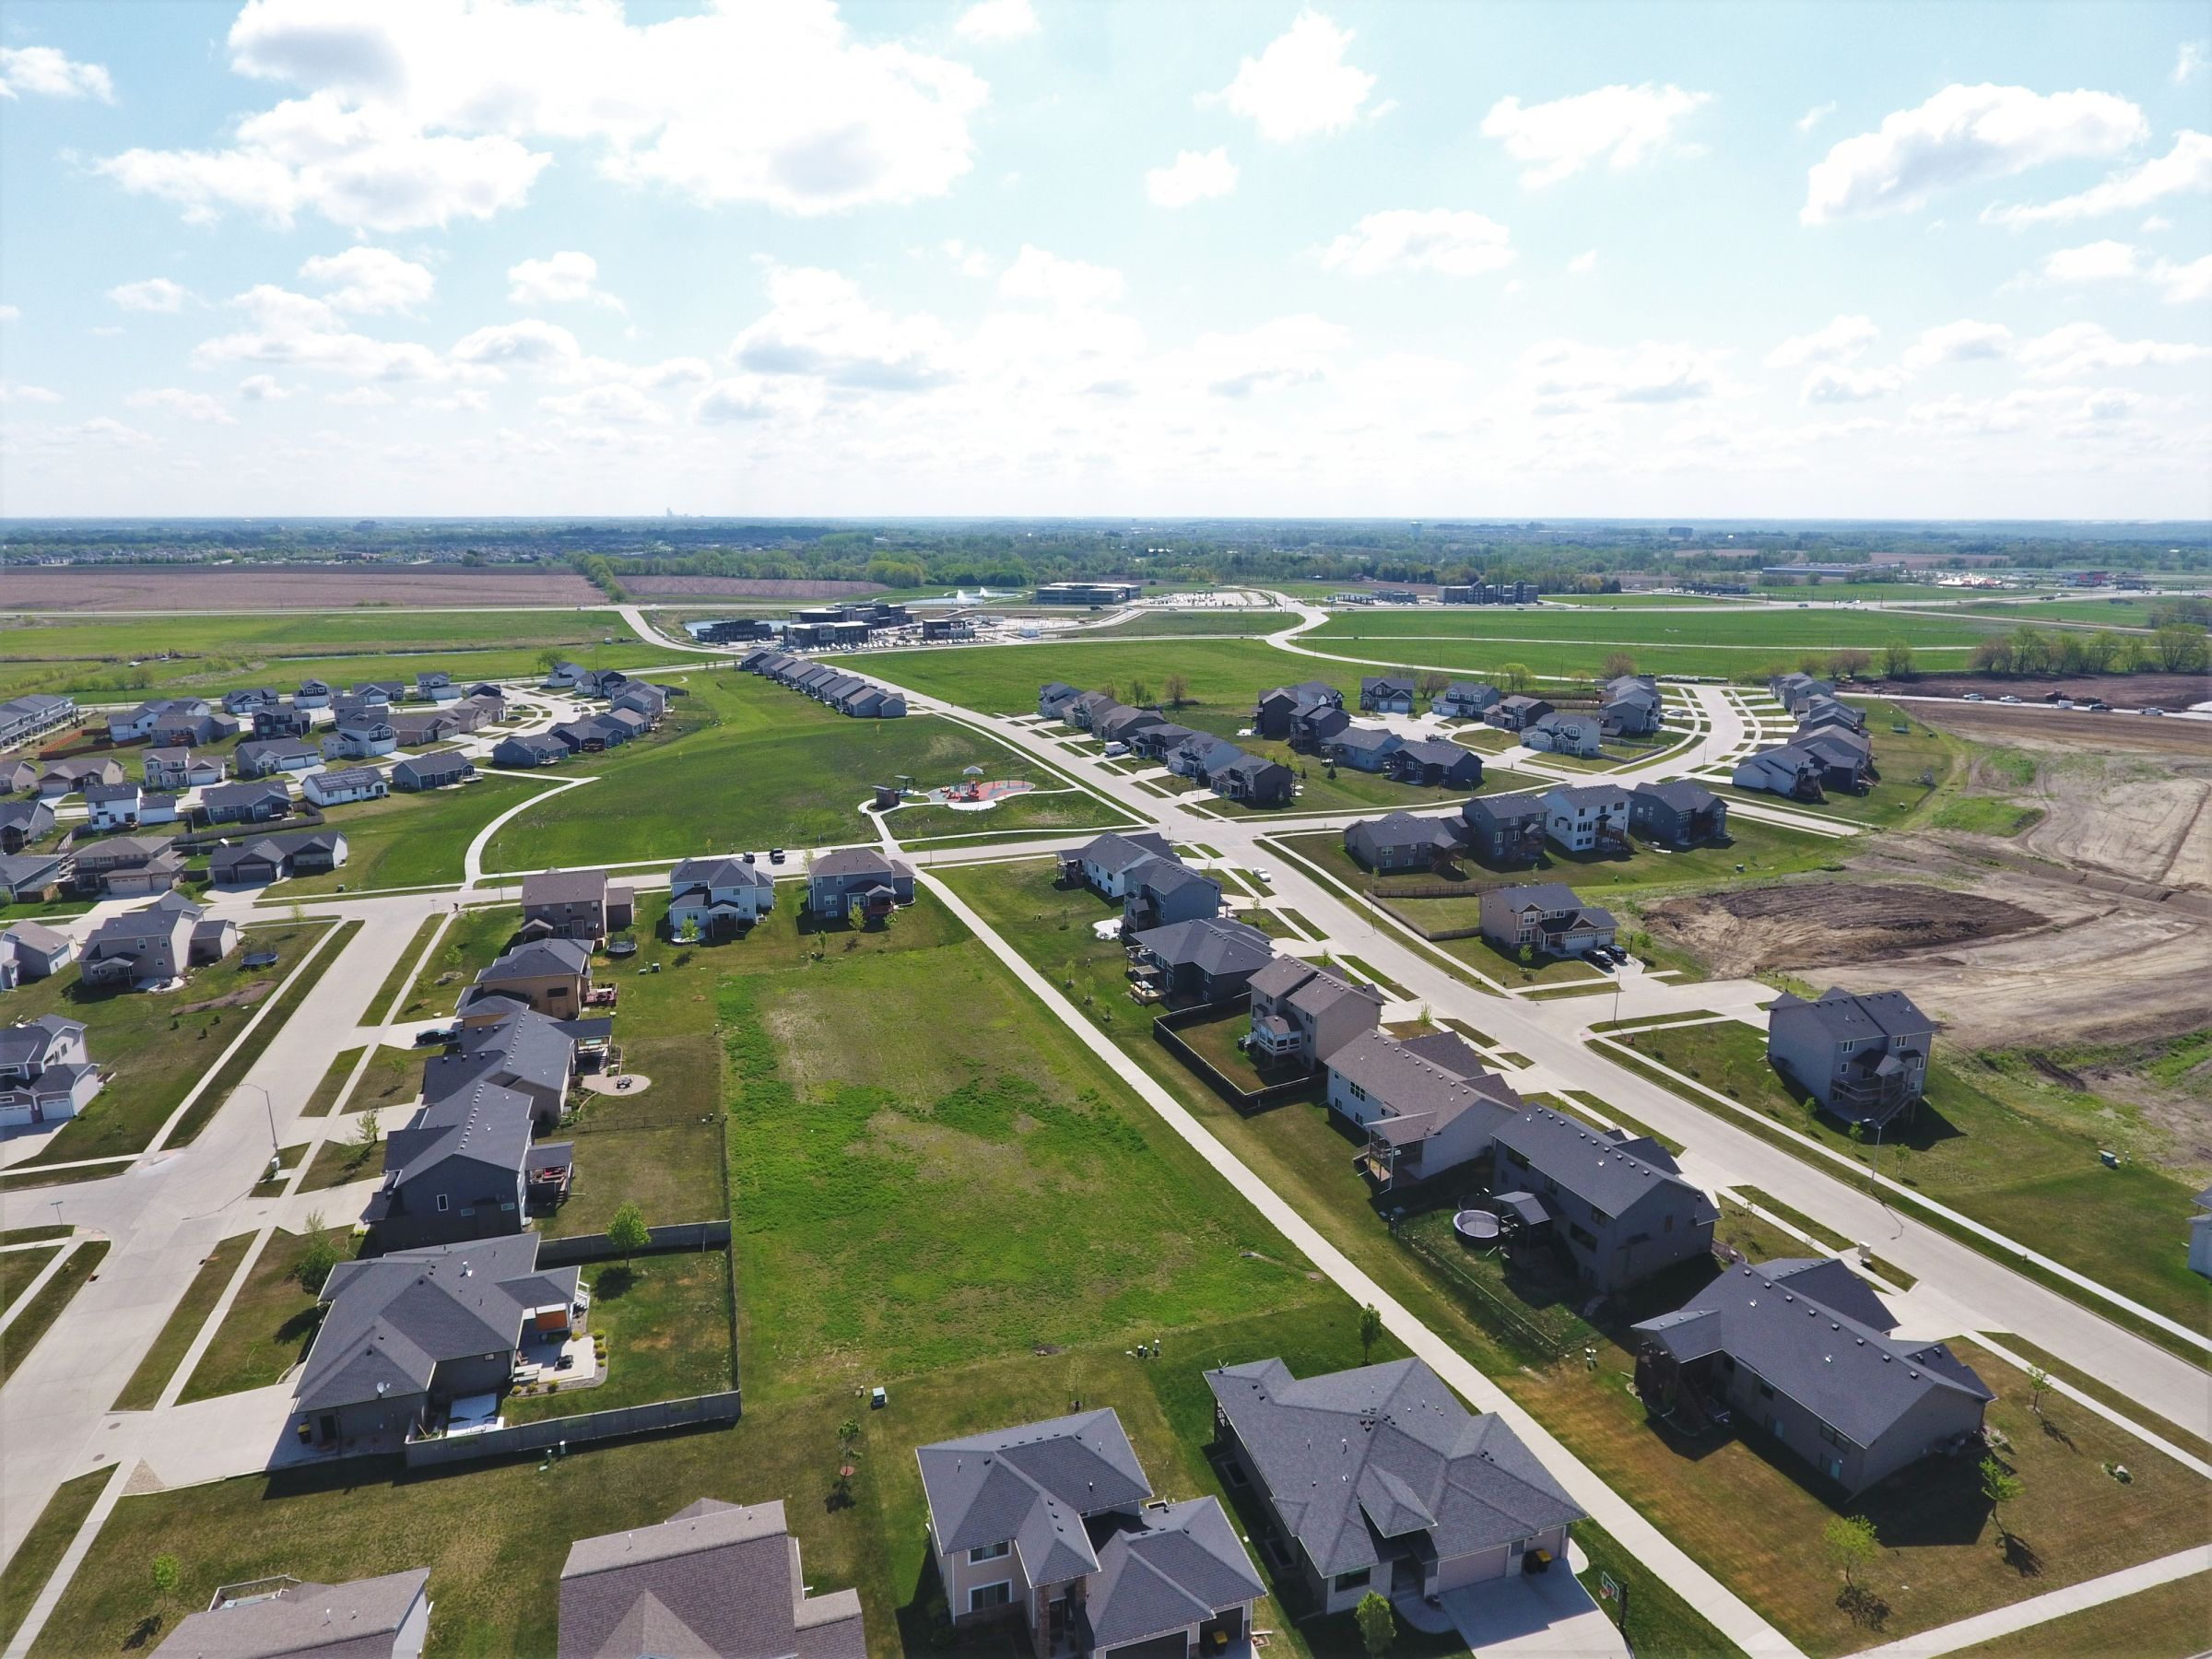 residential-dallas-county-iowa-0-acres-listing-number-15515-0-2021-05-07-181359.jpg